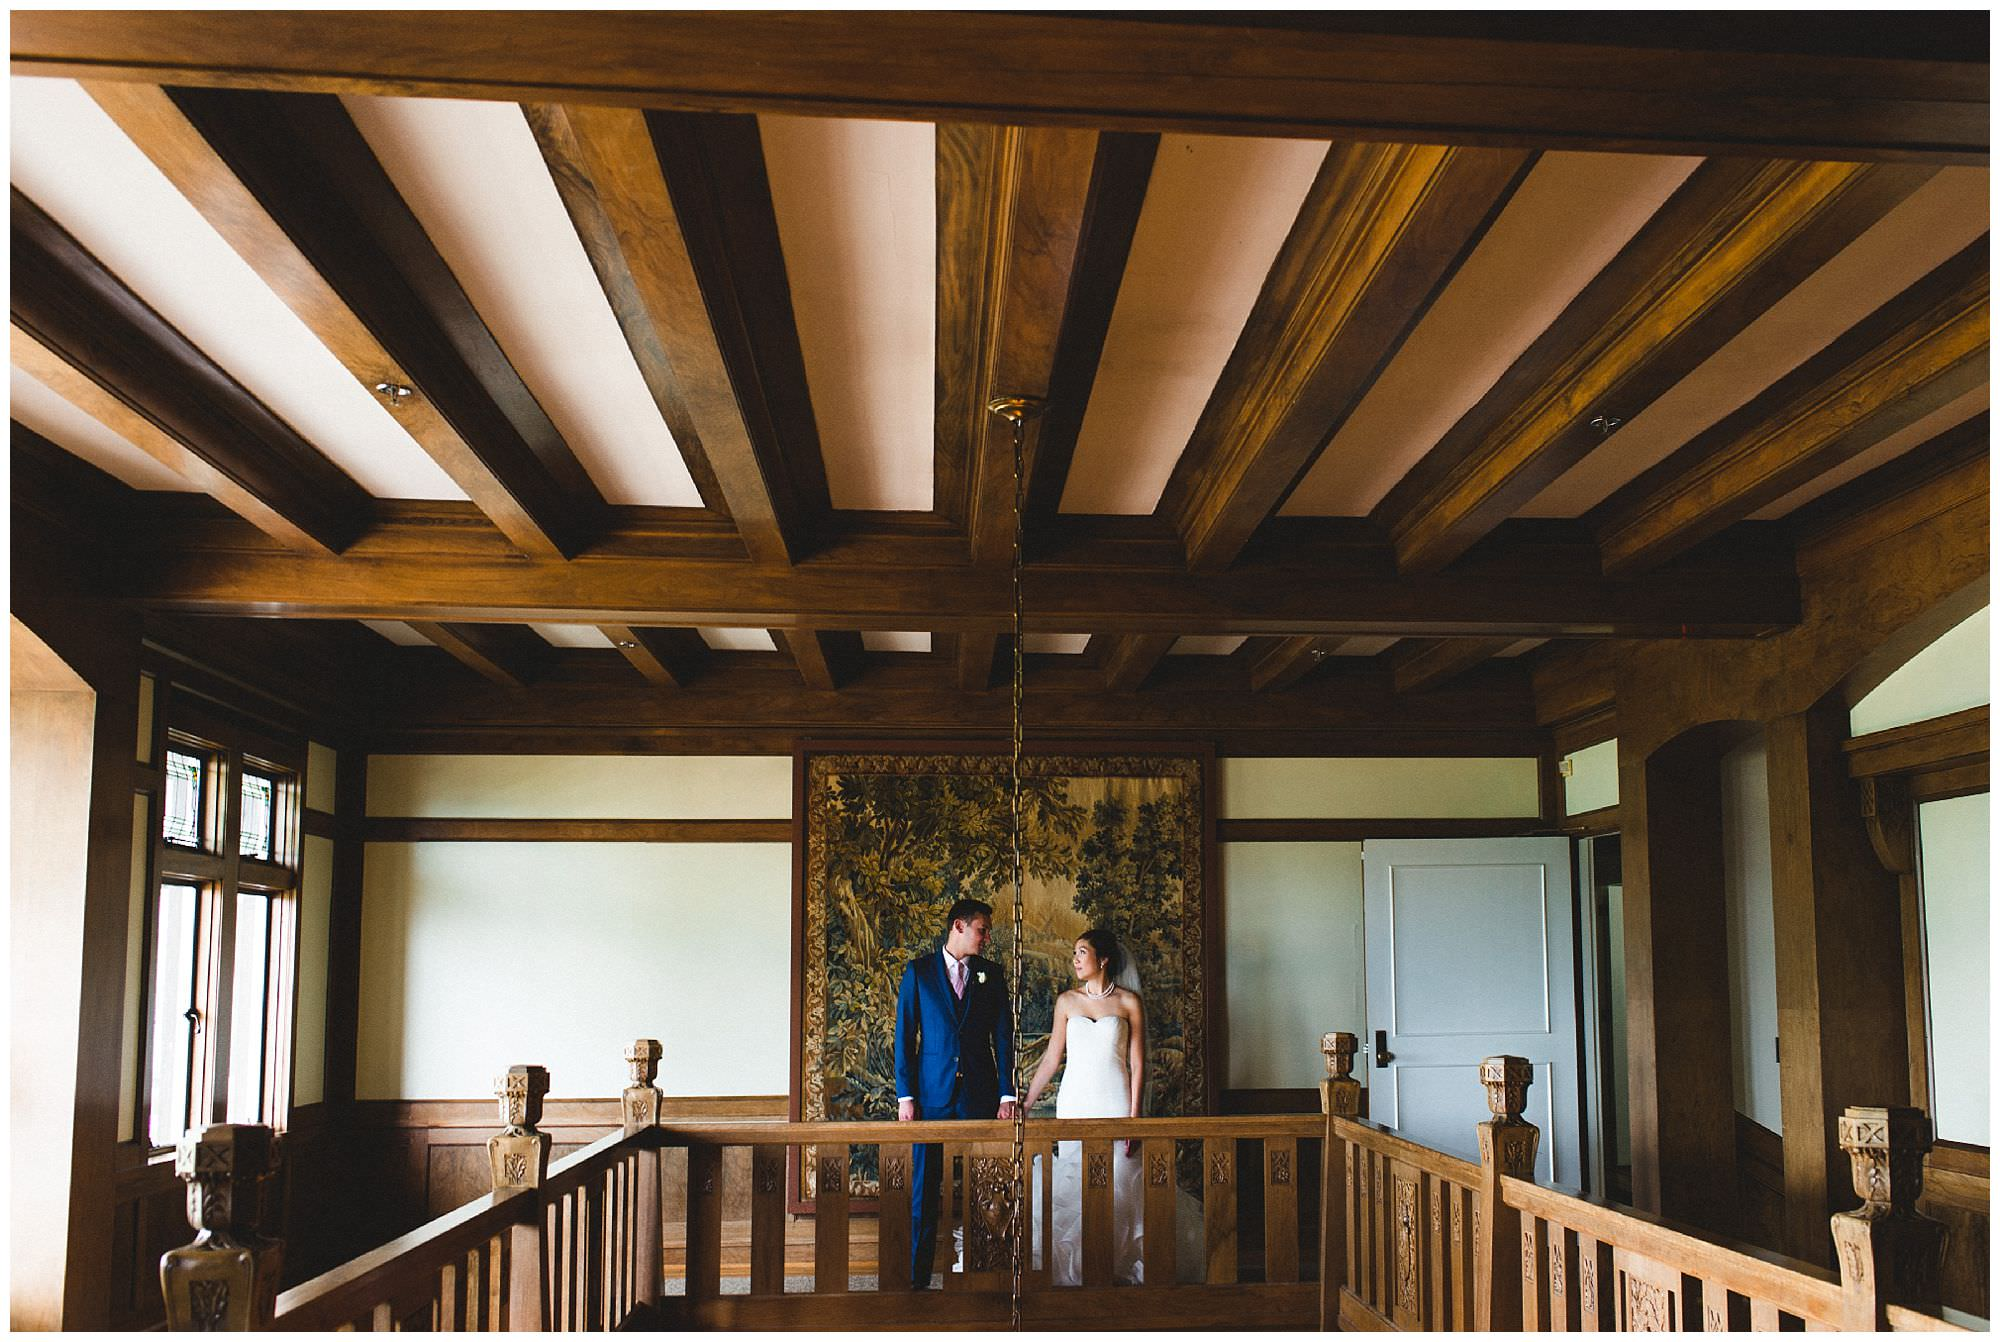 Vancouver bride and groom at their traditional wedding at Cecil Green Park House in Vancouver by candid wedding photographer Ronnie Lee Hill